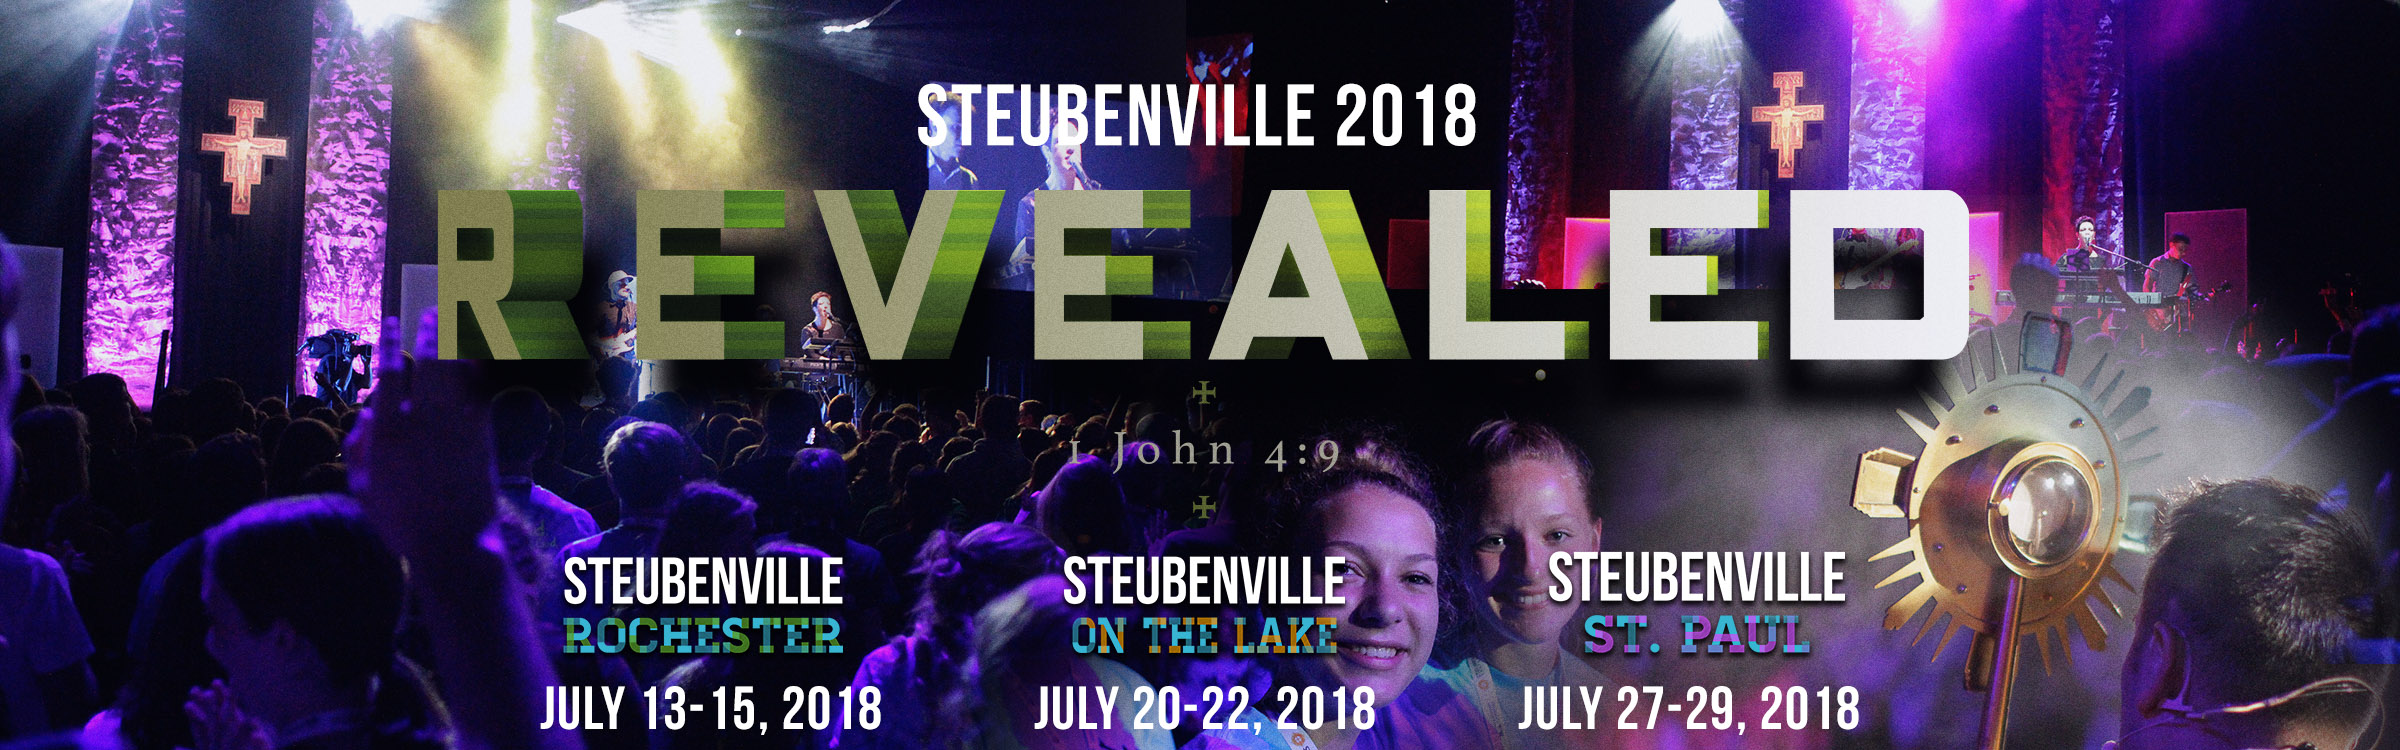 2018_steubenville theme header_dates